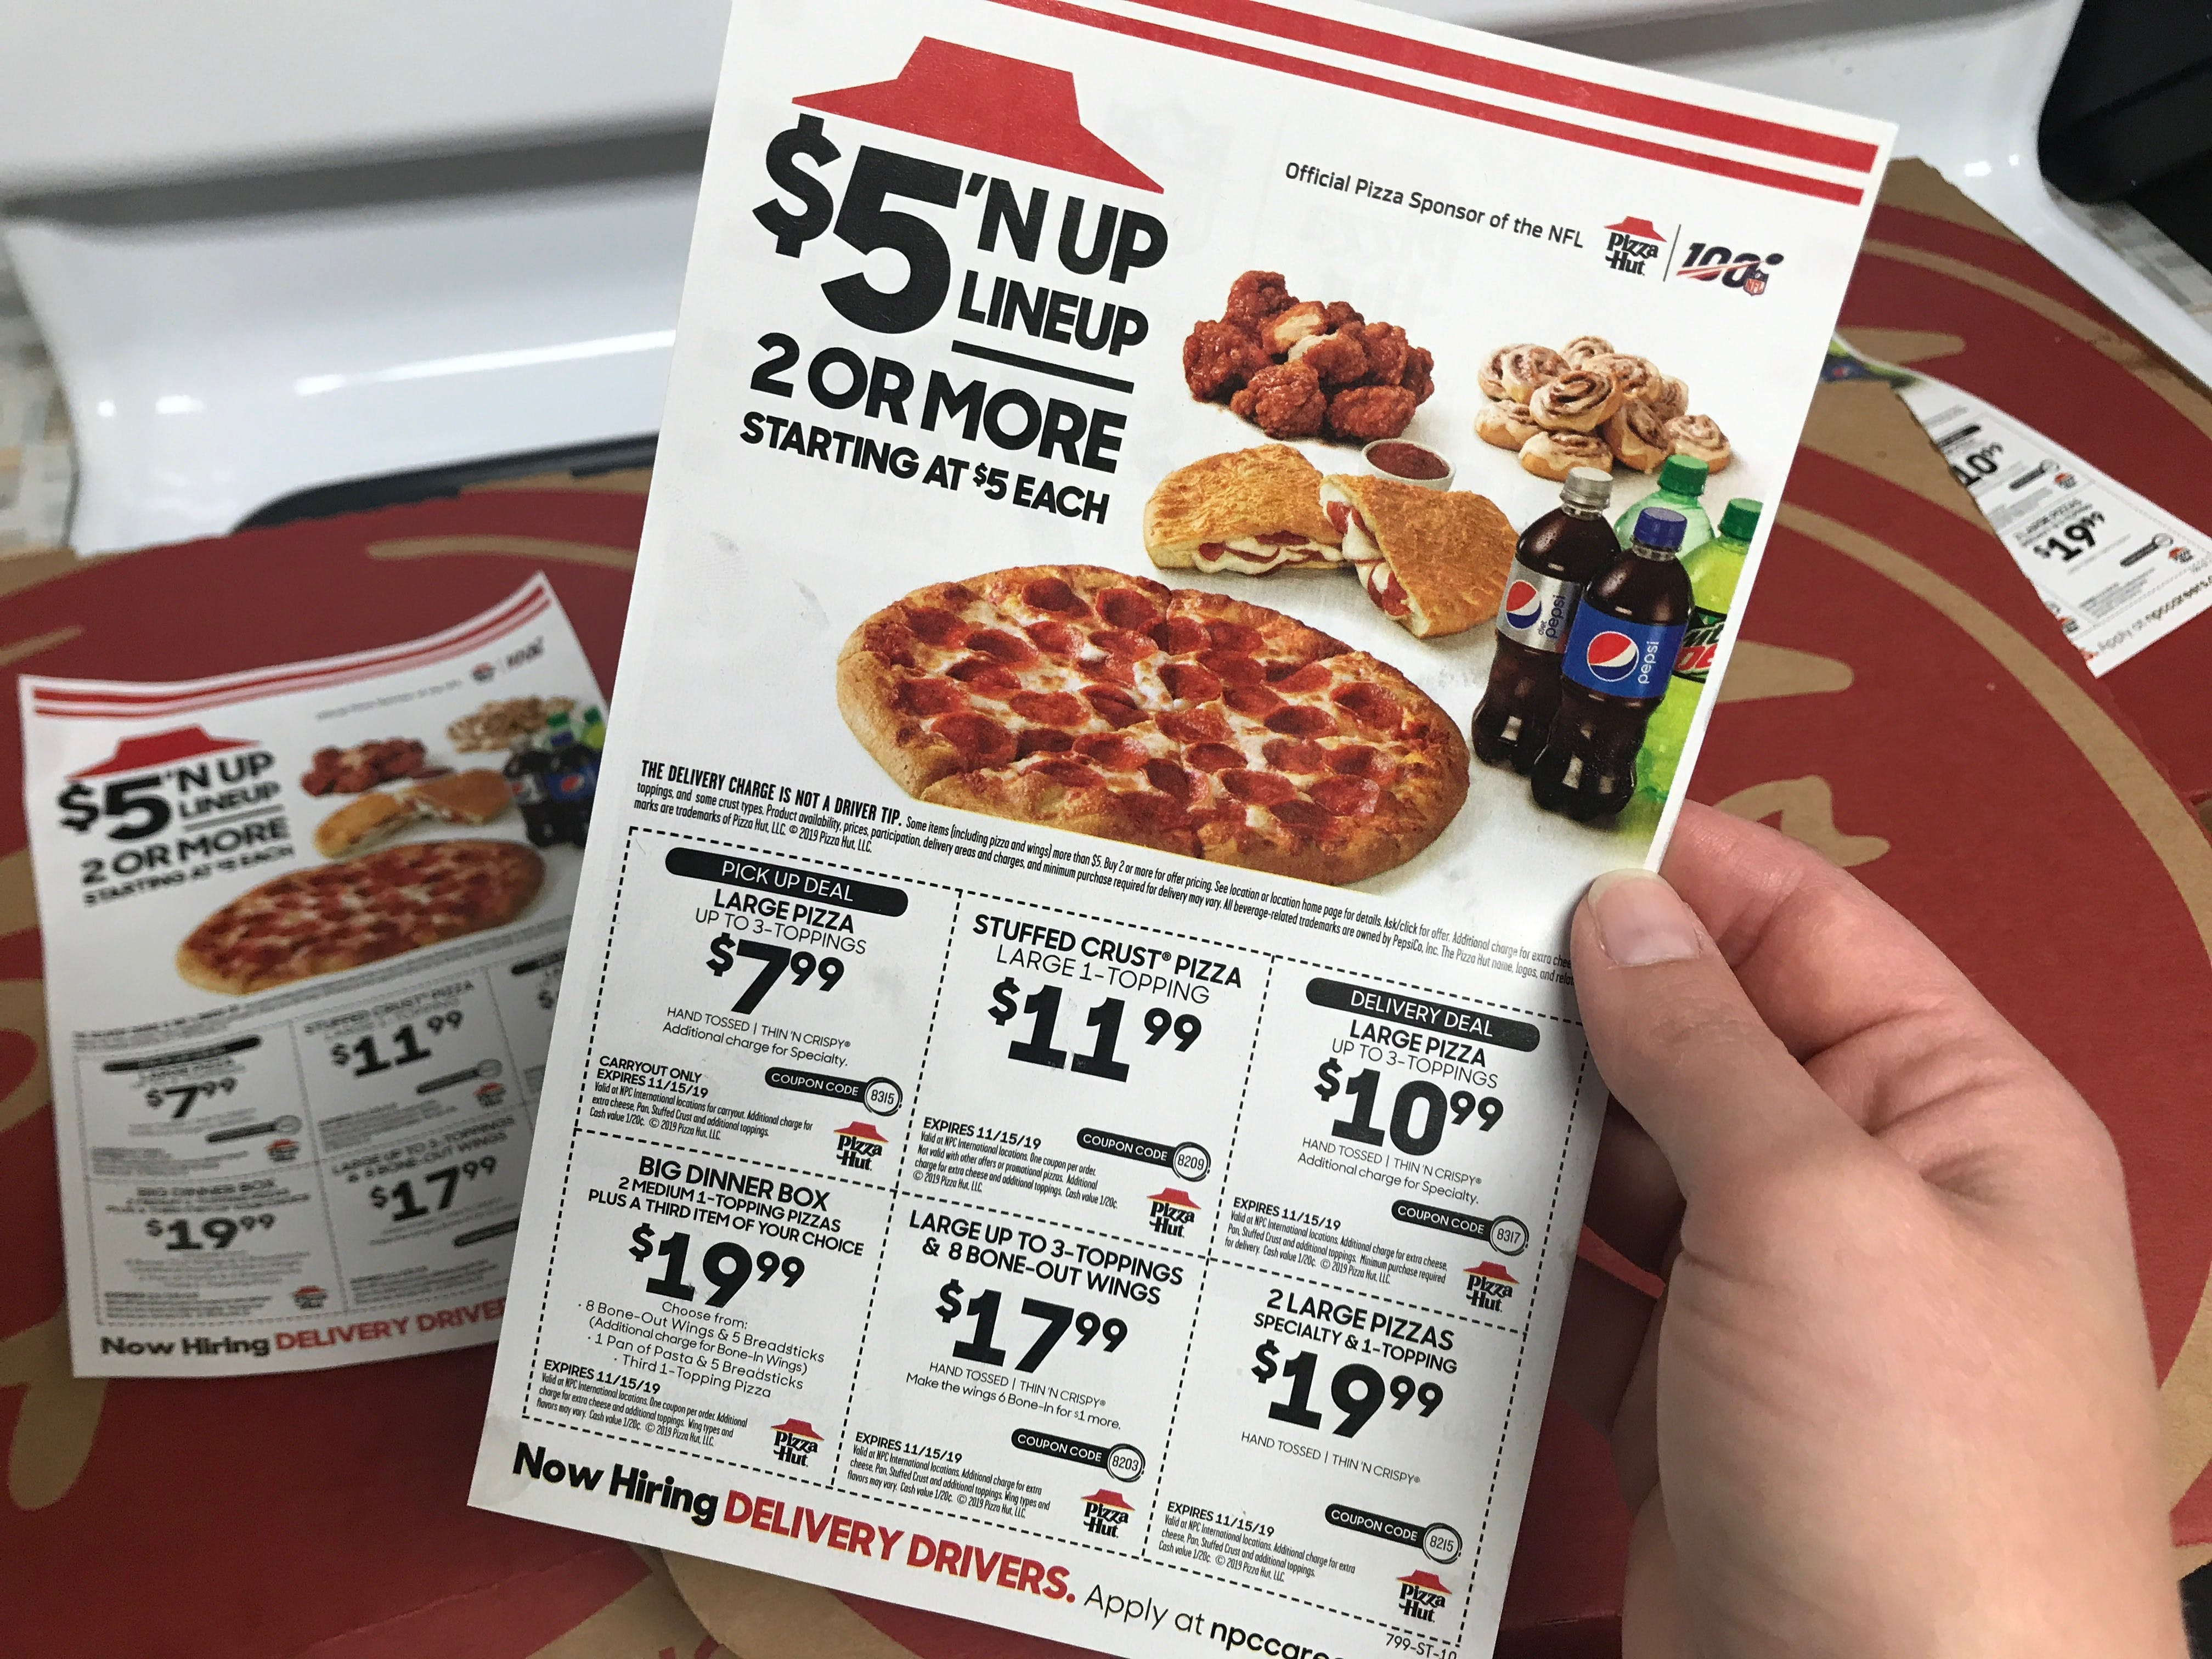 17 Pizza Hut Deals And Savings Tricks You Can T Live Without The Krazy Coupon Lady